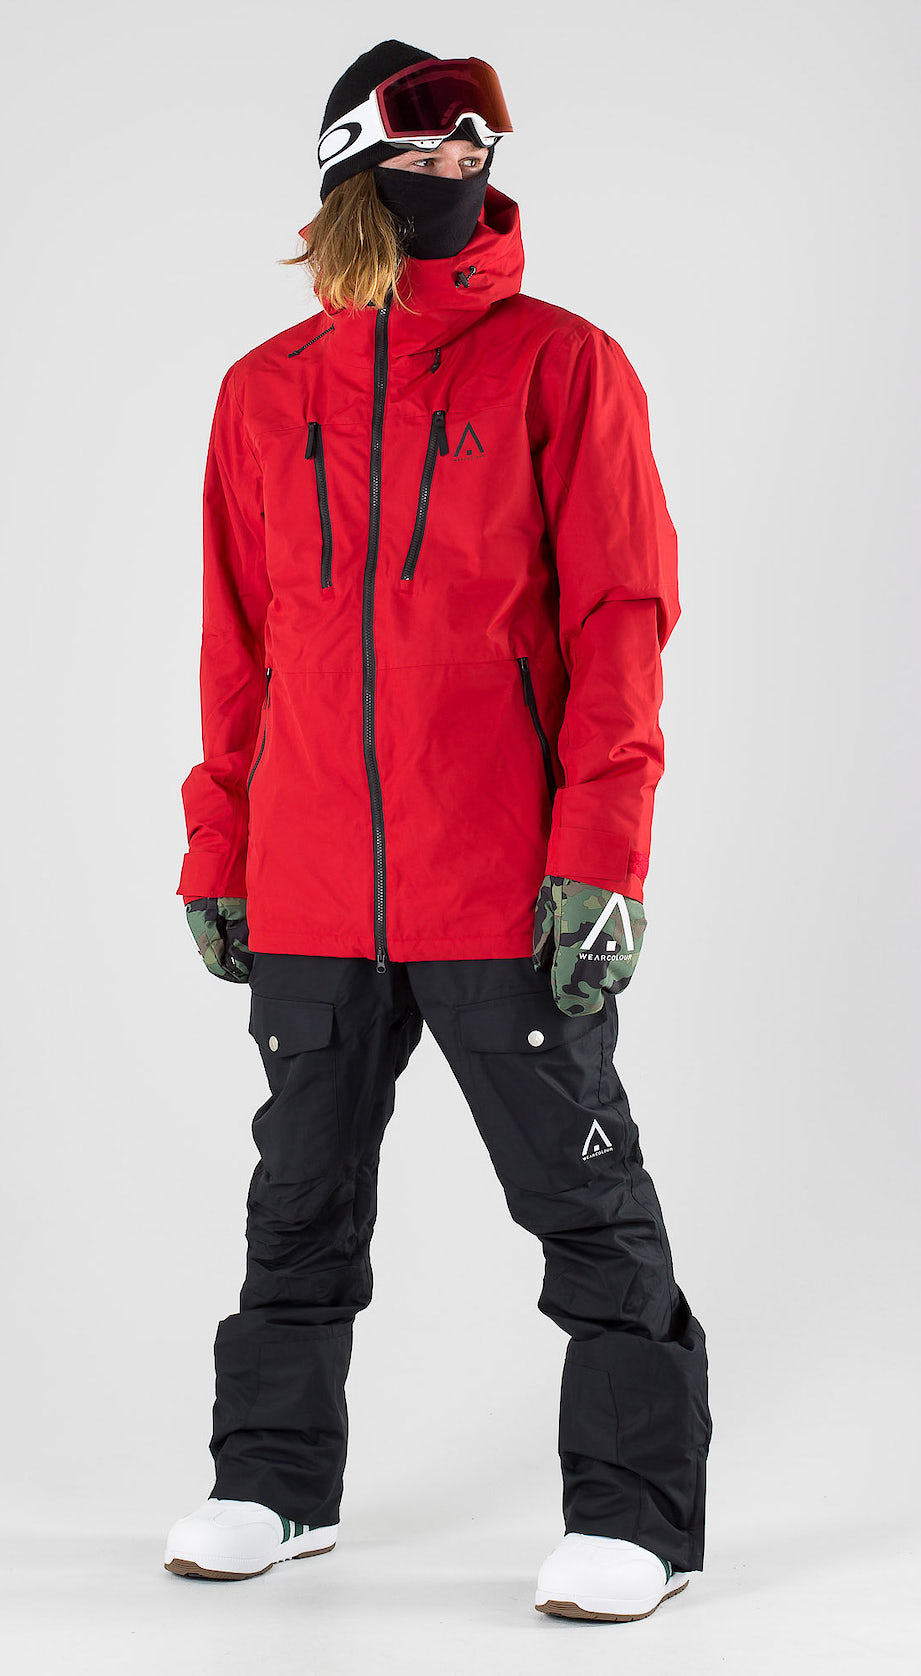 WearColour Grid Falu Red Snowboardkleidung Multi